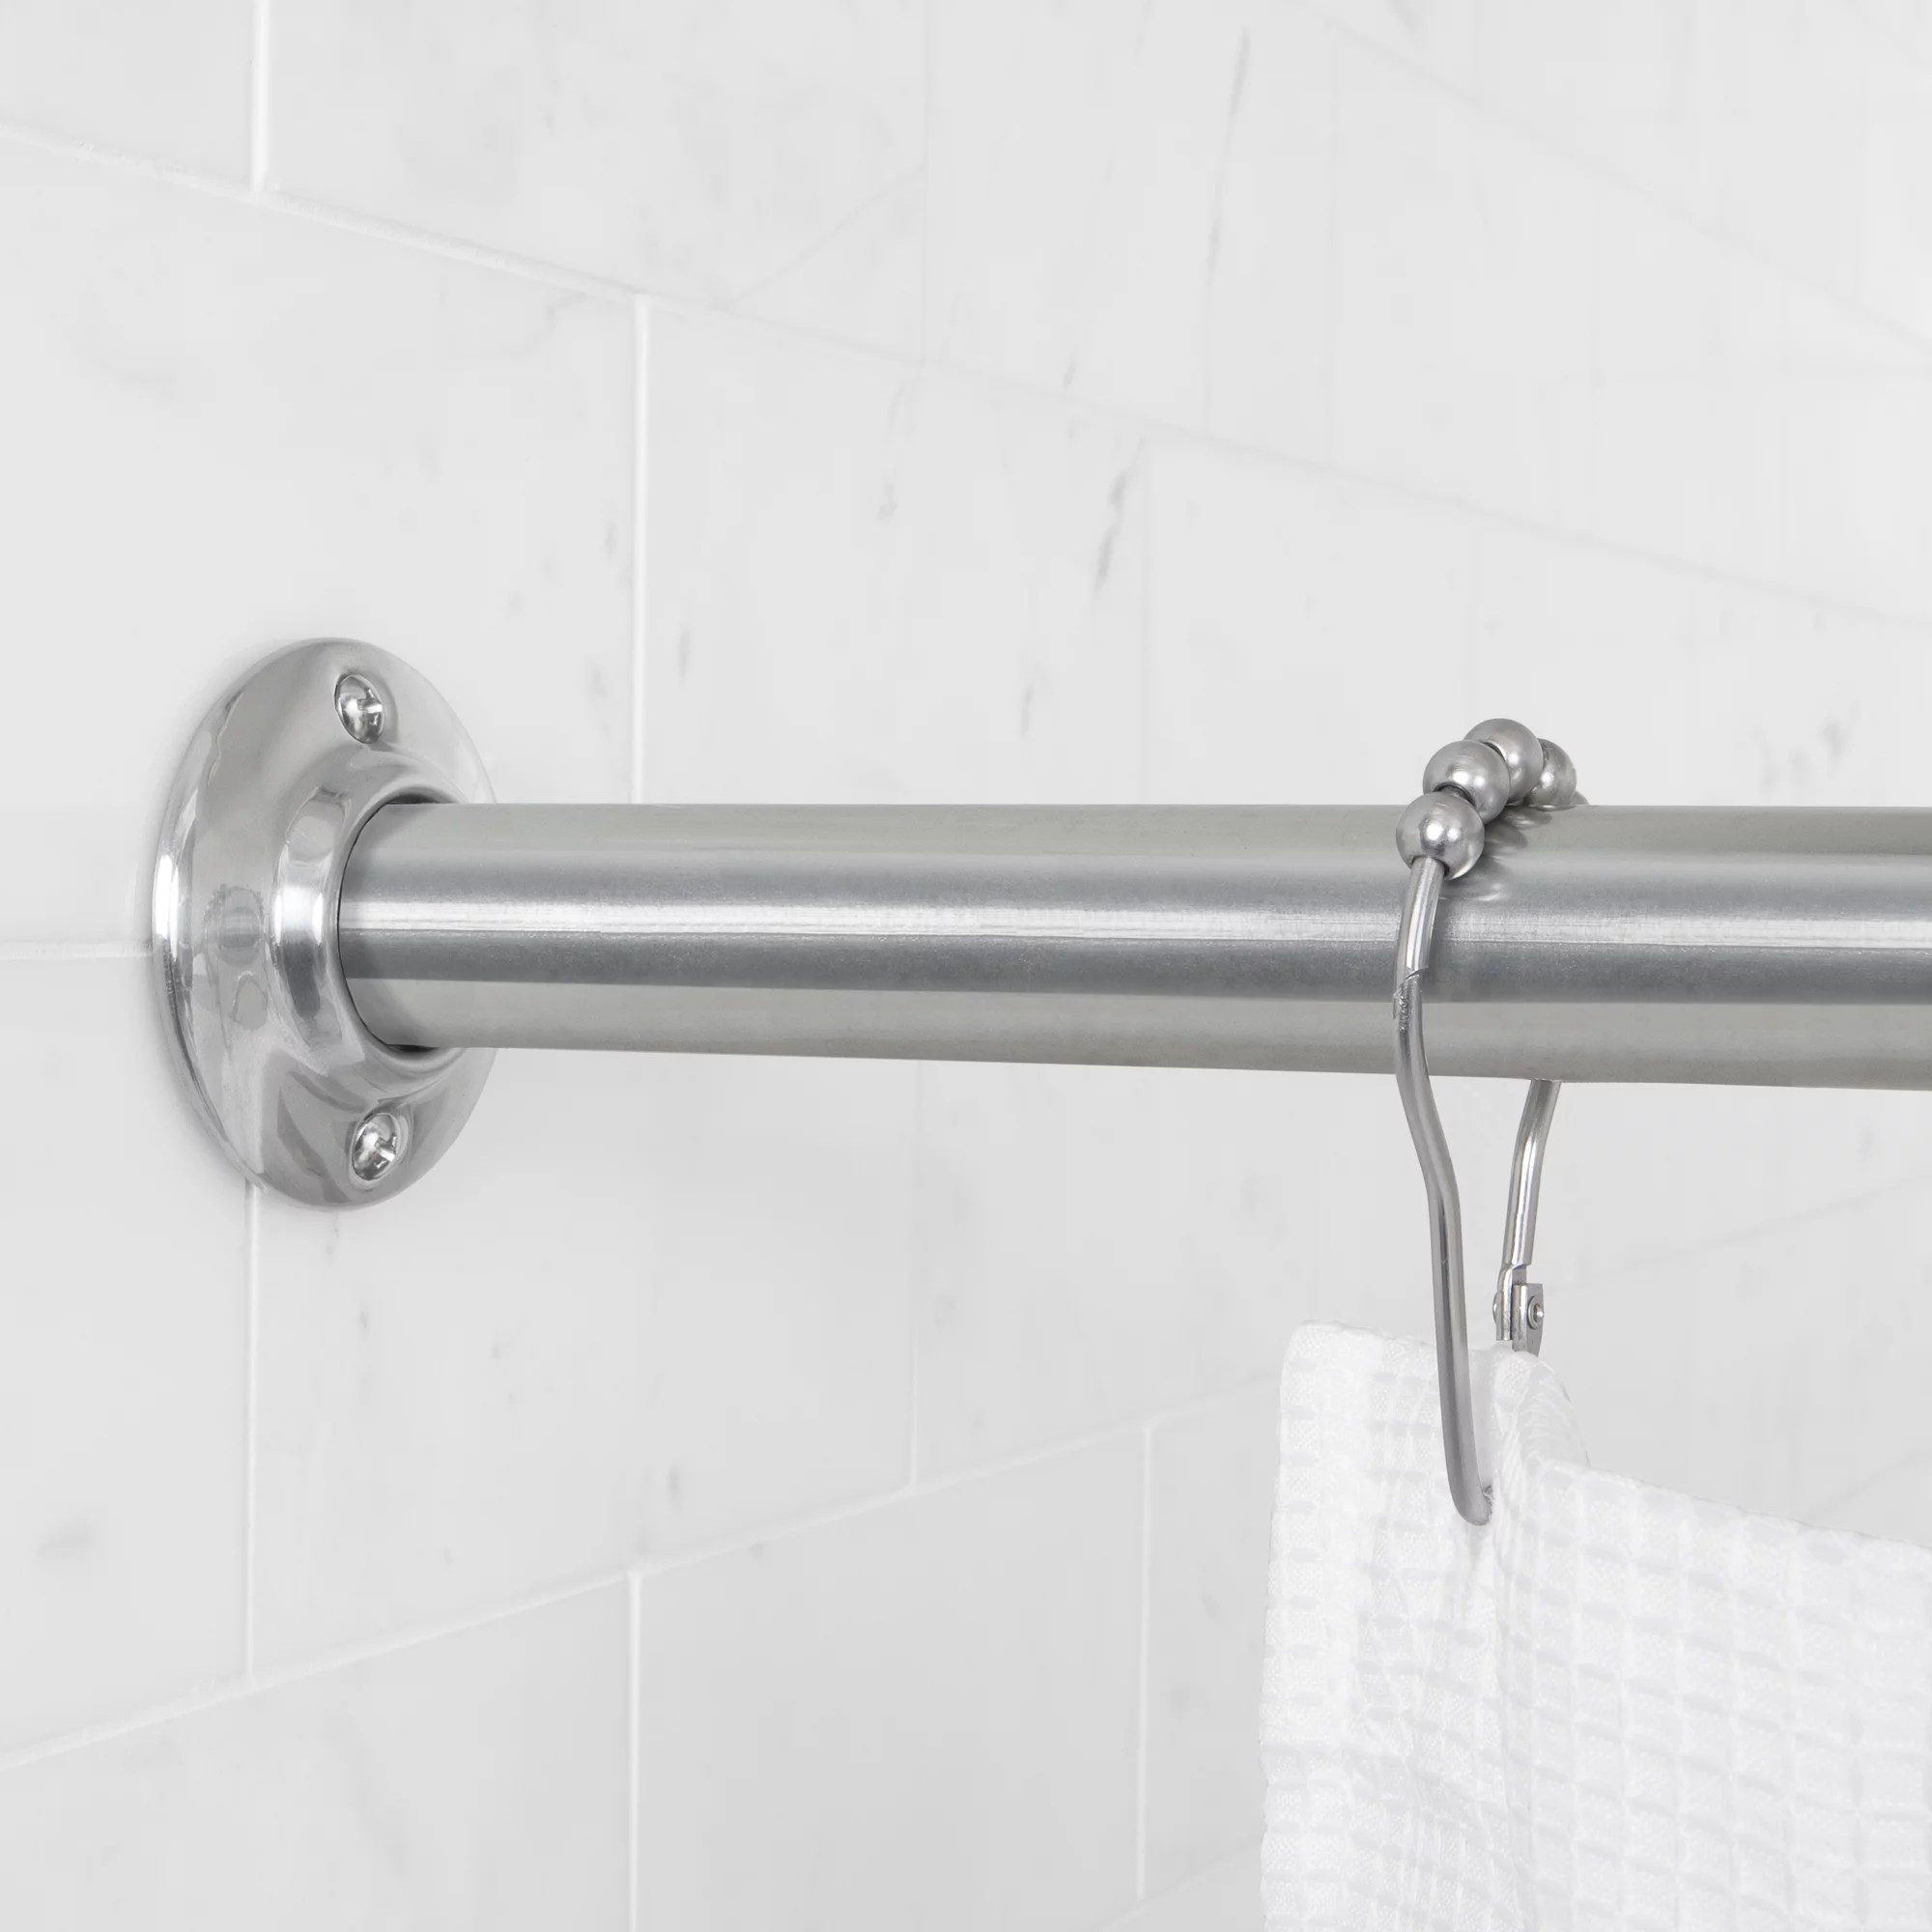 Unique Shower Curtain Rods Mainstays Permanent Straight Shower Curtain Tension Rod 1 Each